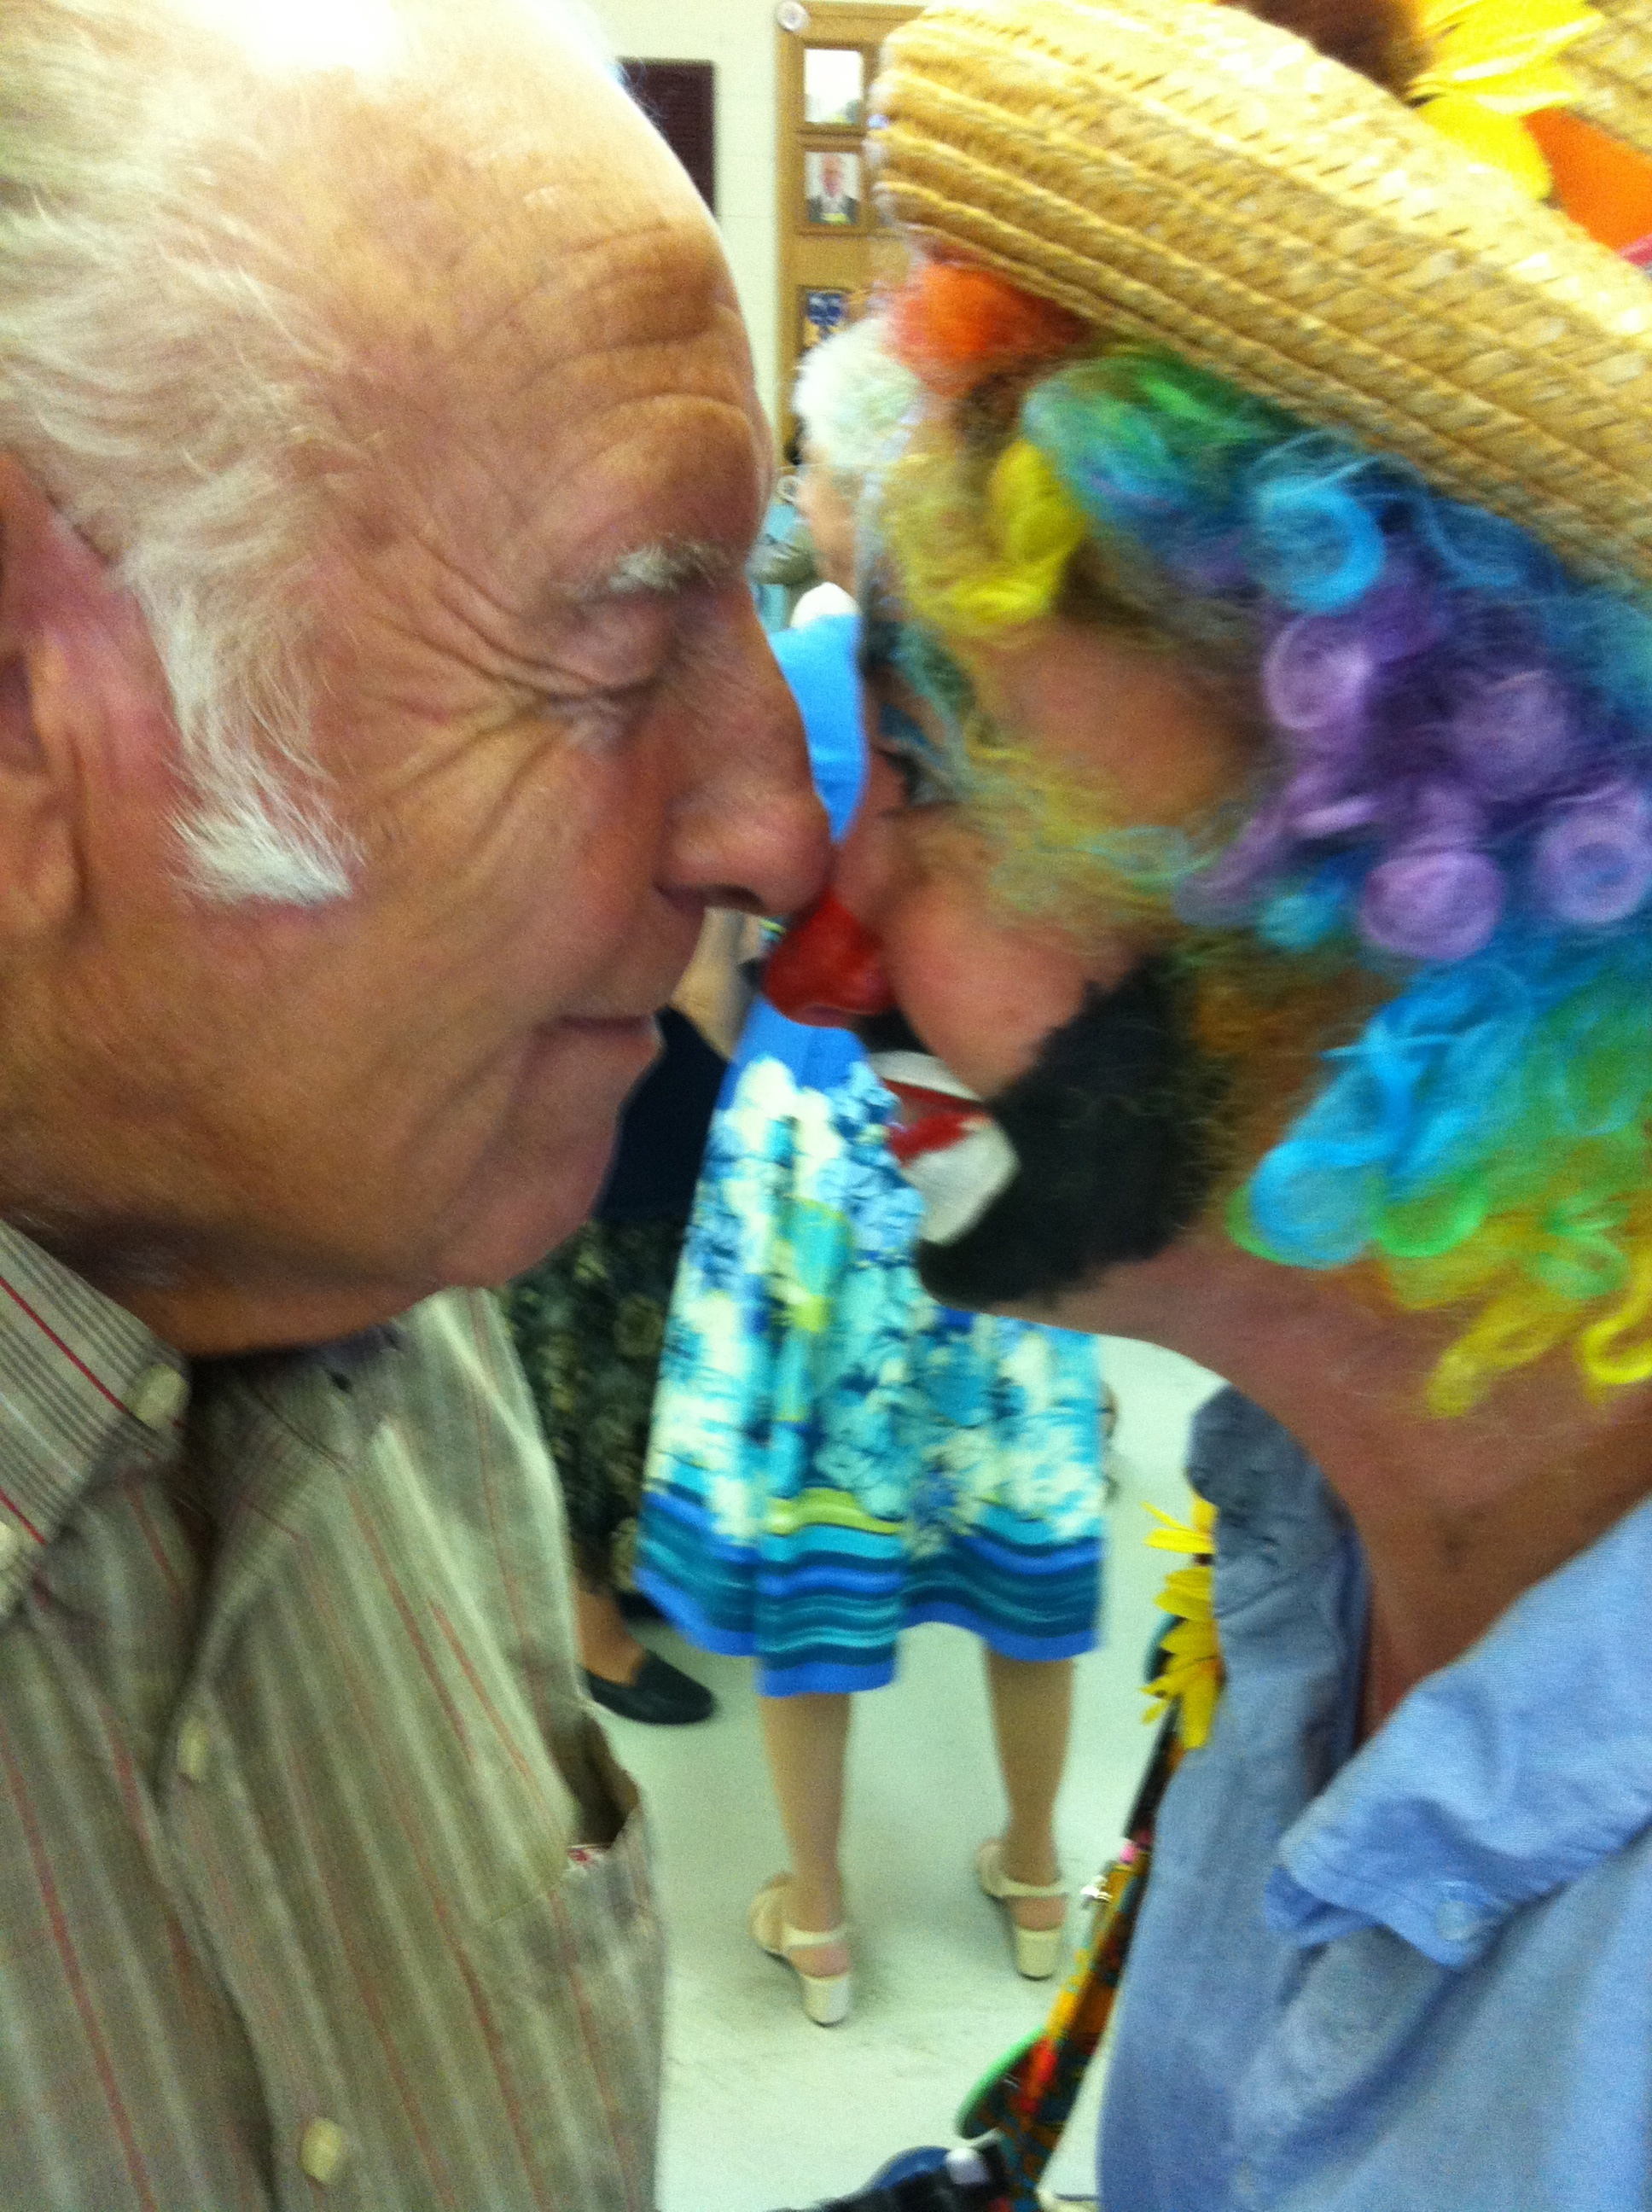 Grandpa Schaadt and Gidget the Clown, his grand daughter